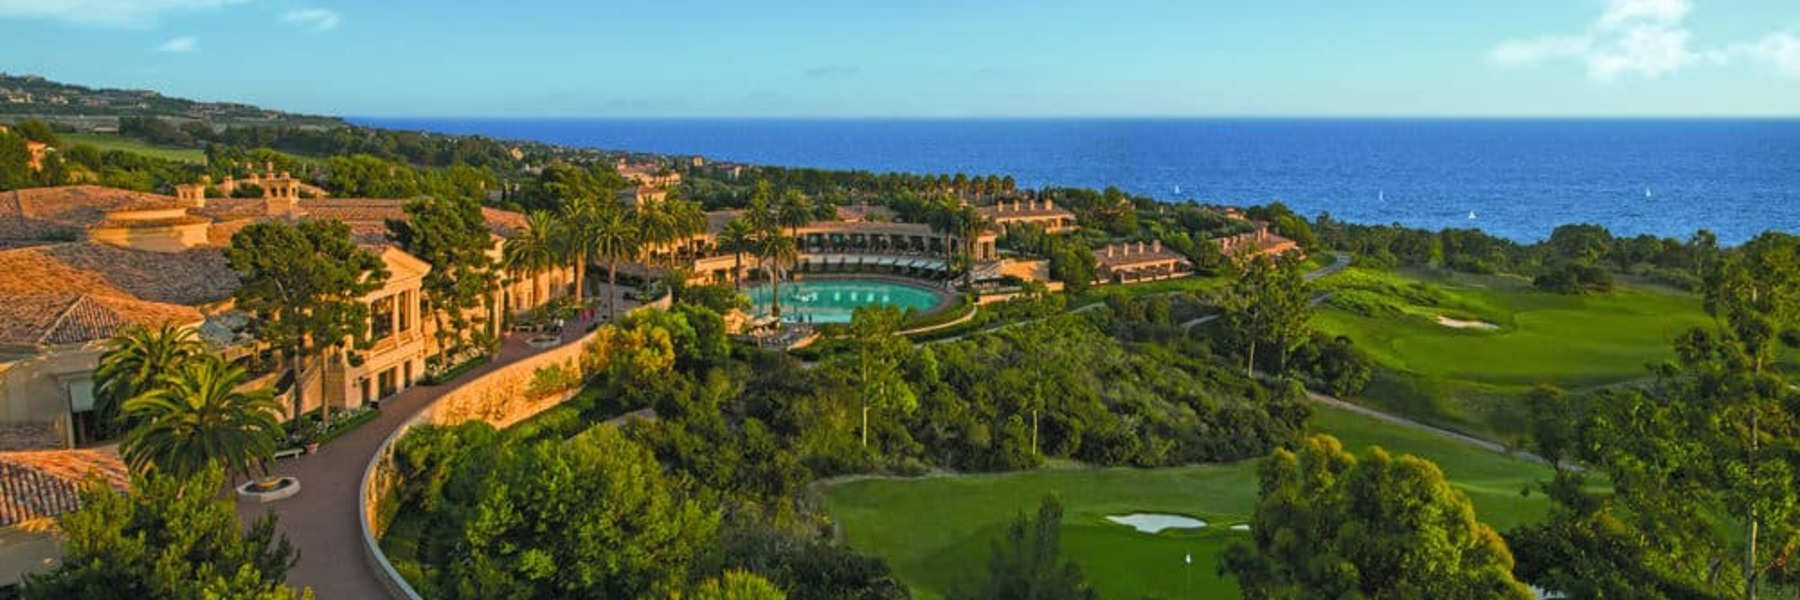 Golf Vacation Package - Oceanview Bungalow/Villa - Oceanside Golf and Breakfast for $489!